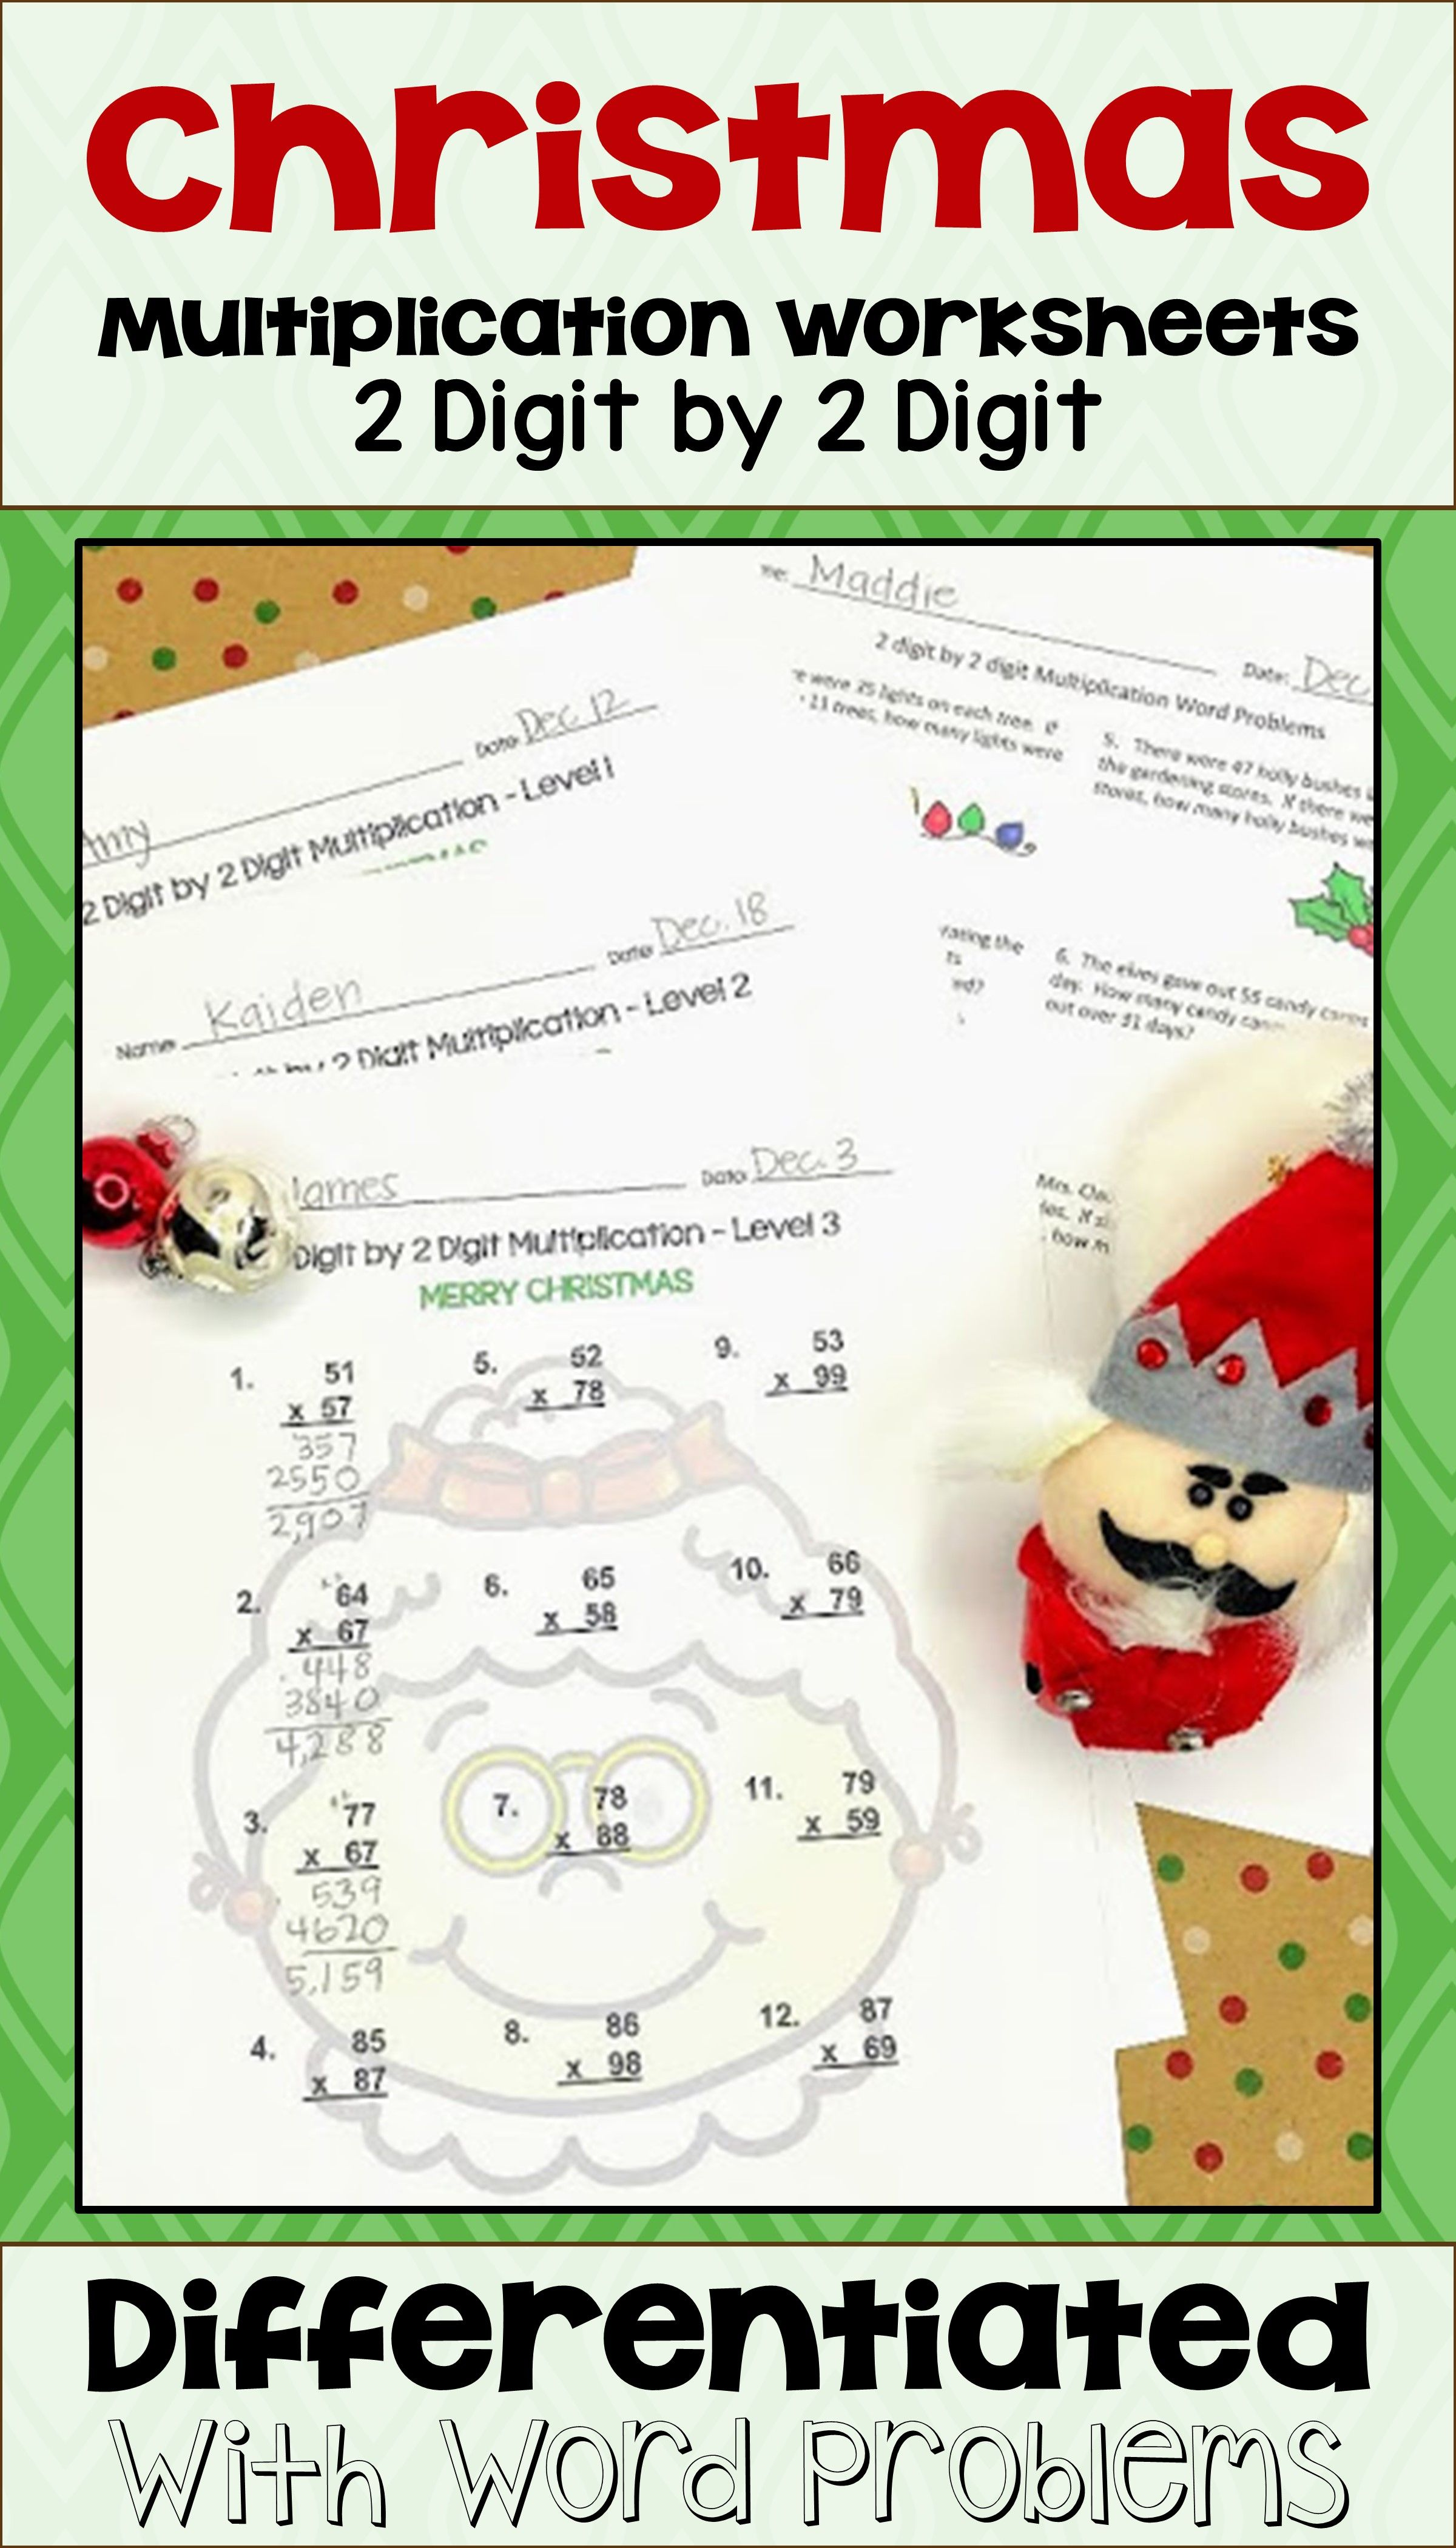 Christmas 2 Digit By 2 Digit Multiplication Worksheets